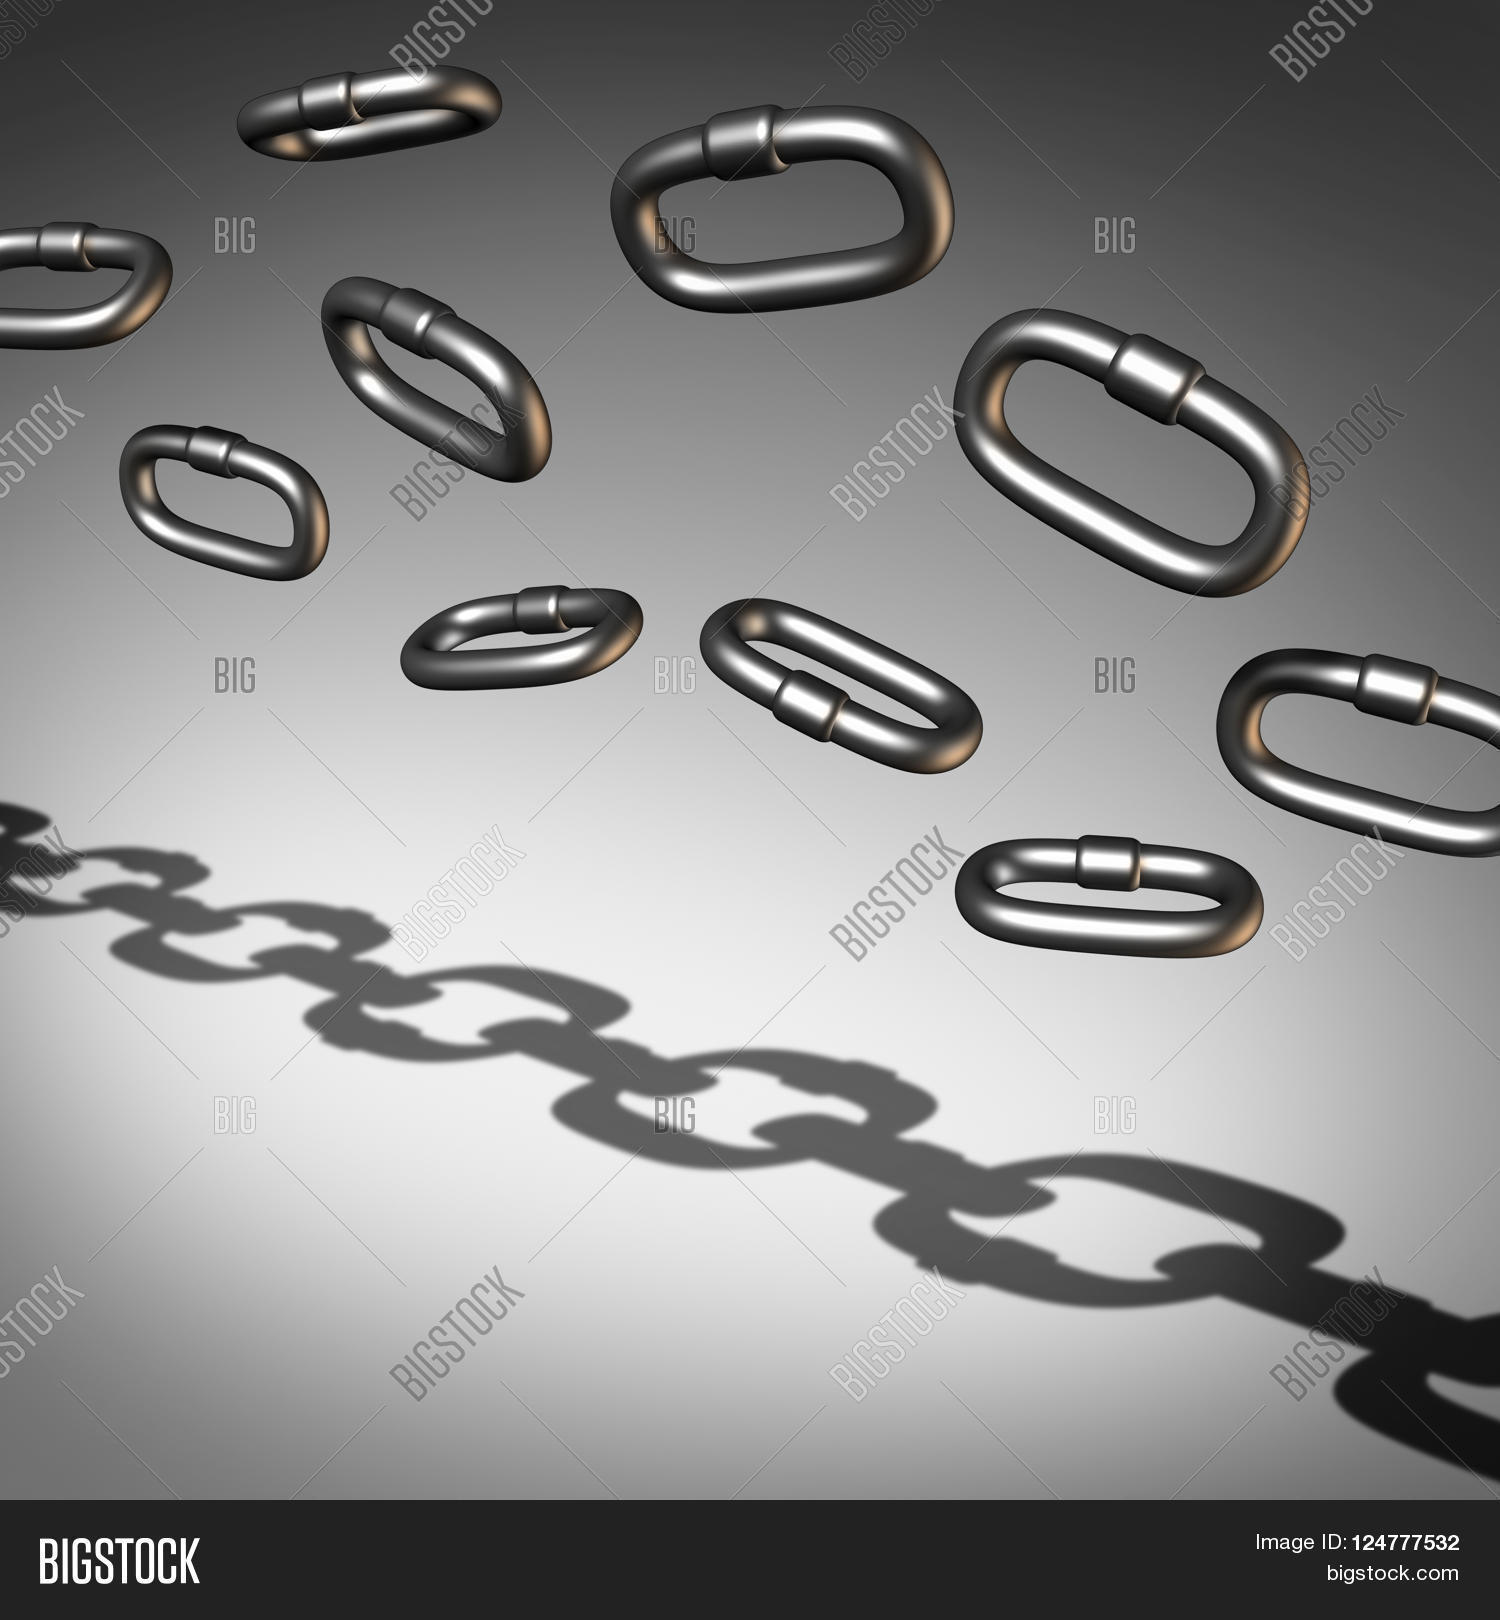 Chain Abstract Image Photo Free Trial Bigstock